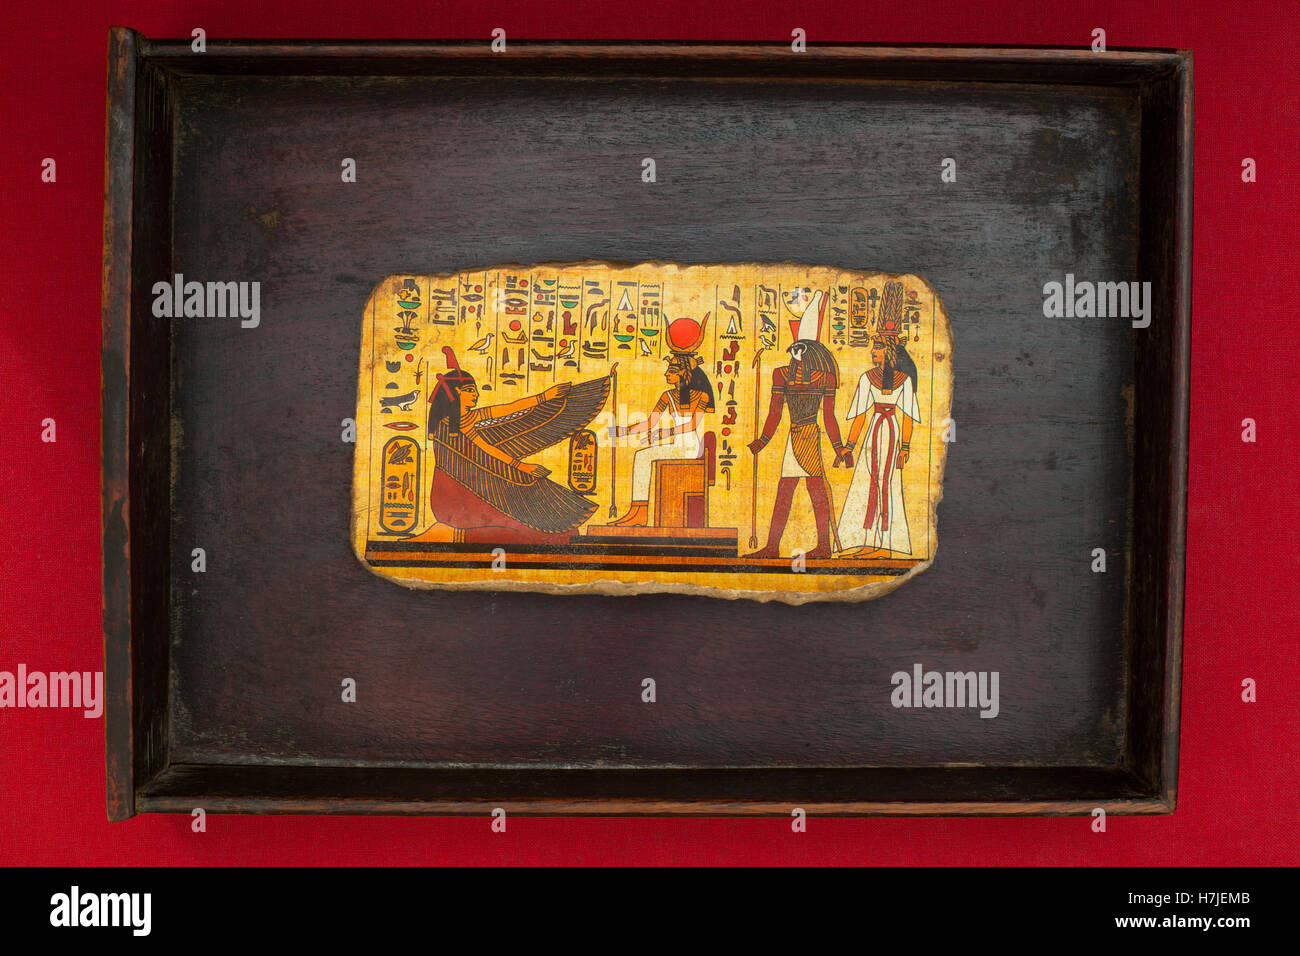 Egyptian Hieroglyphic Scene in a box frame - Stock Image